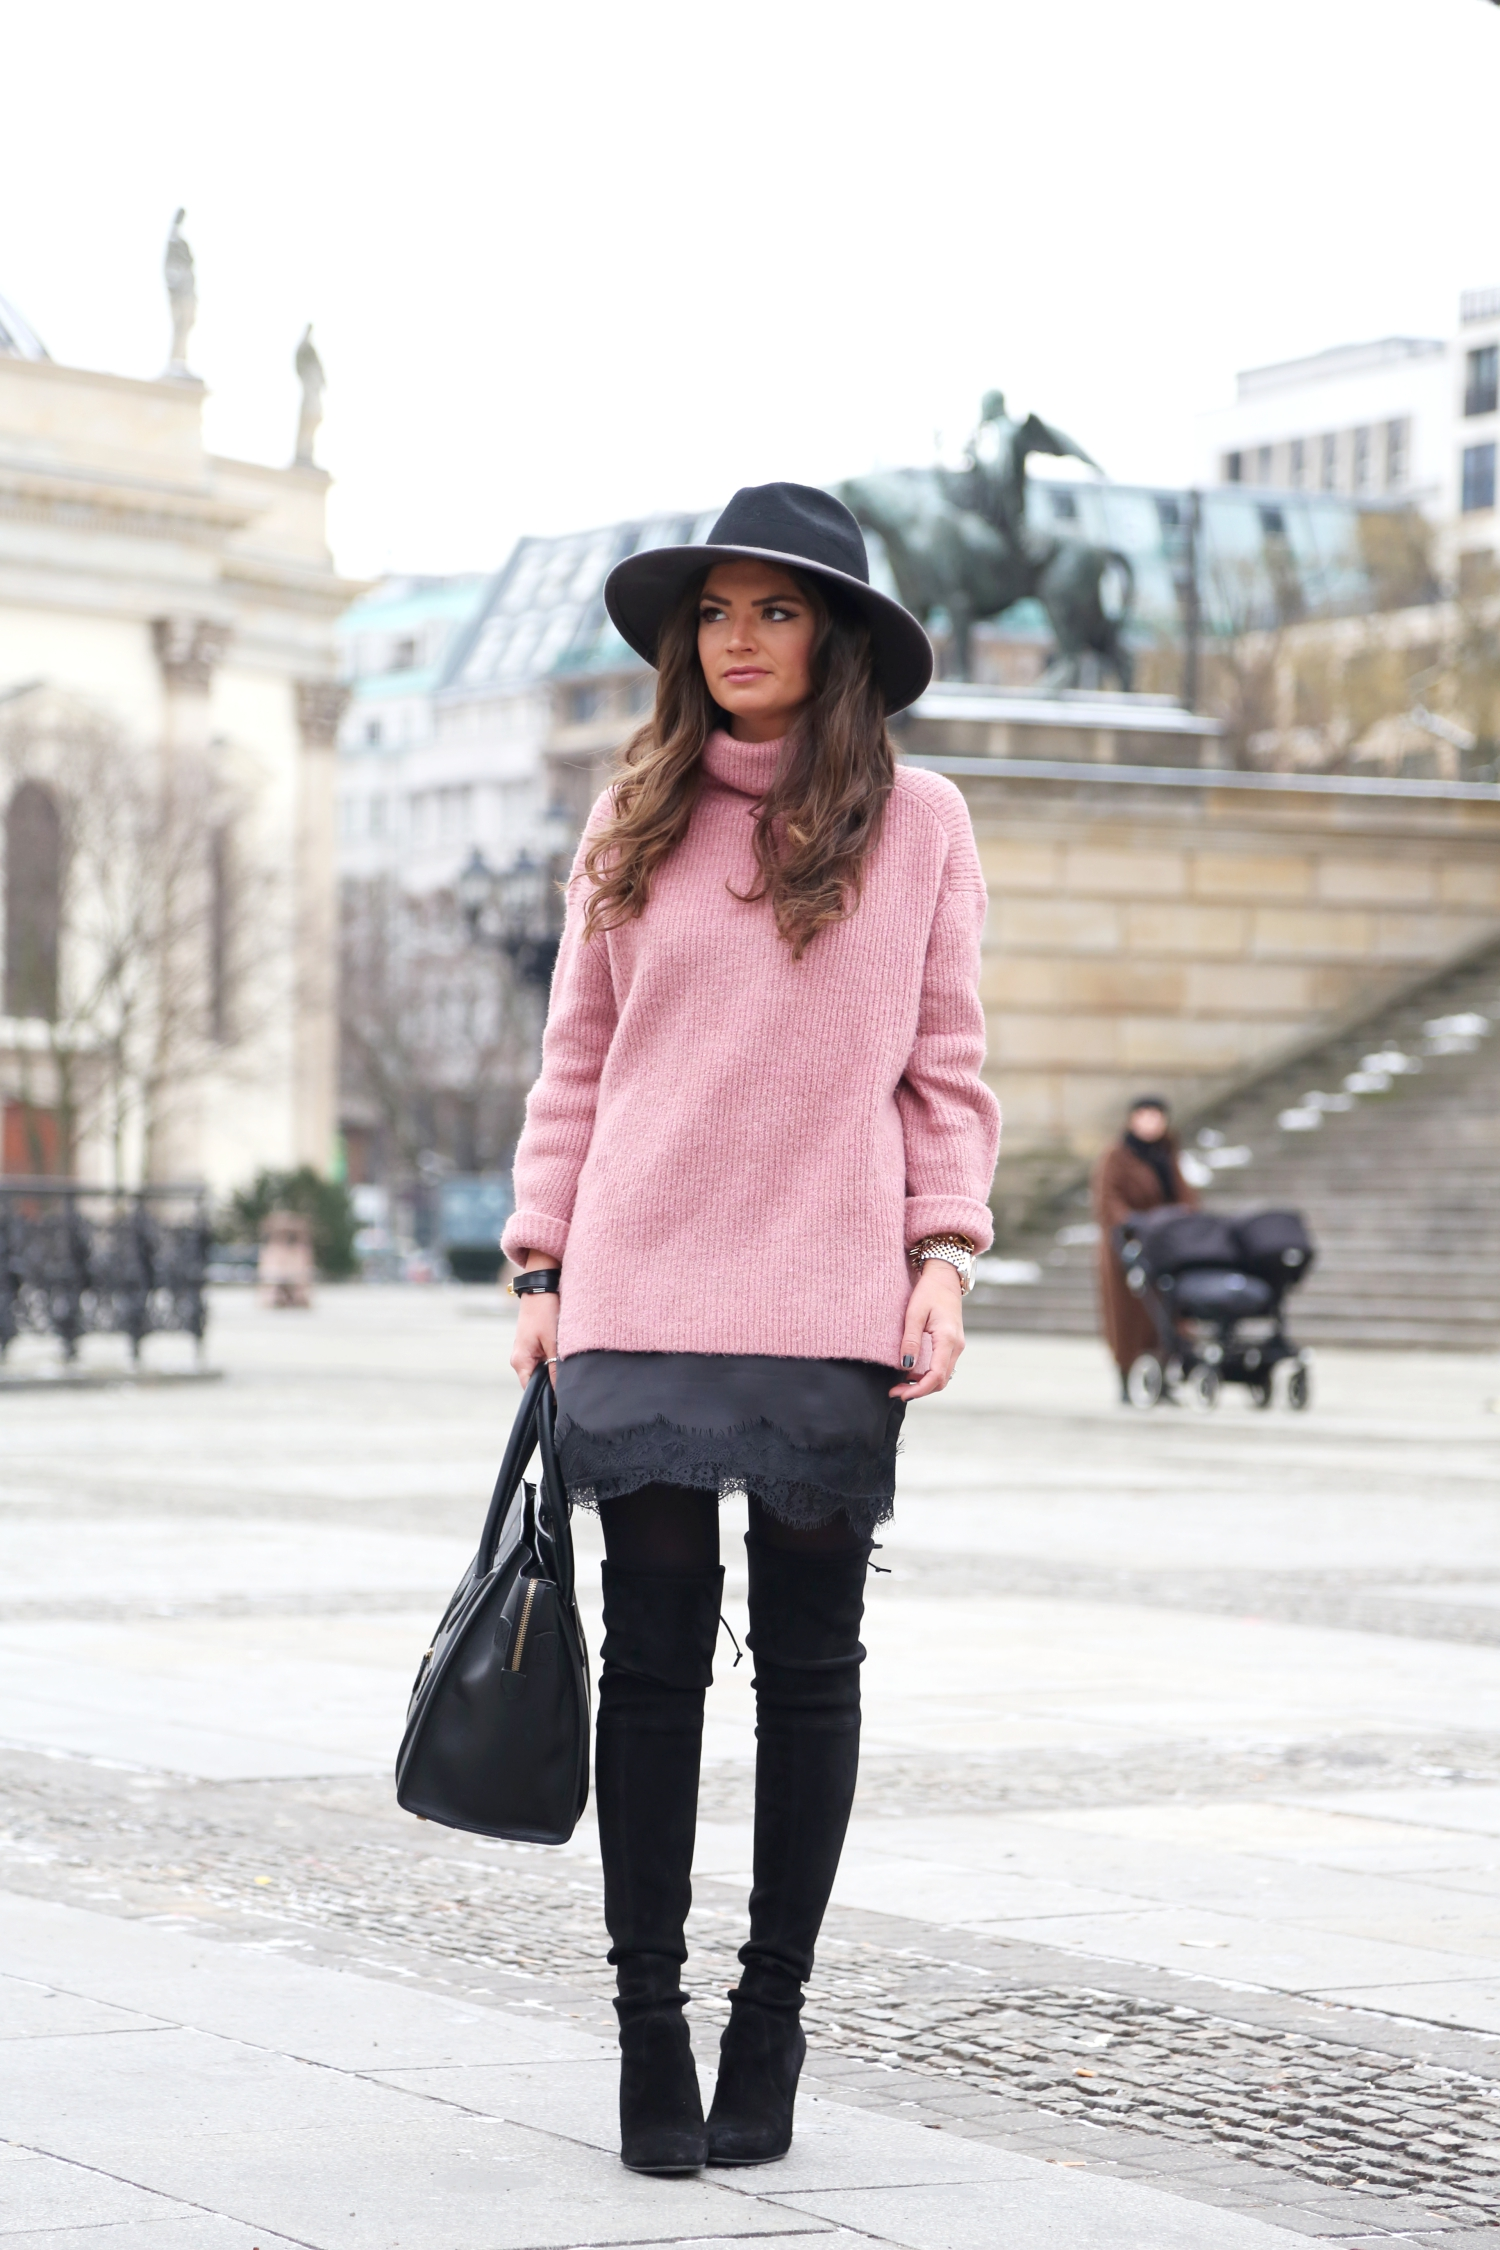 berlin-fashion-week-outfit-fashionhippieloves-german-fashionblogger-overknees-knit